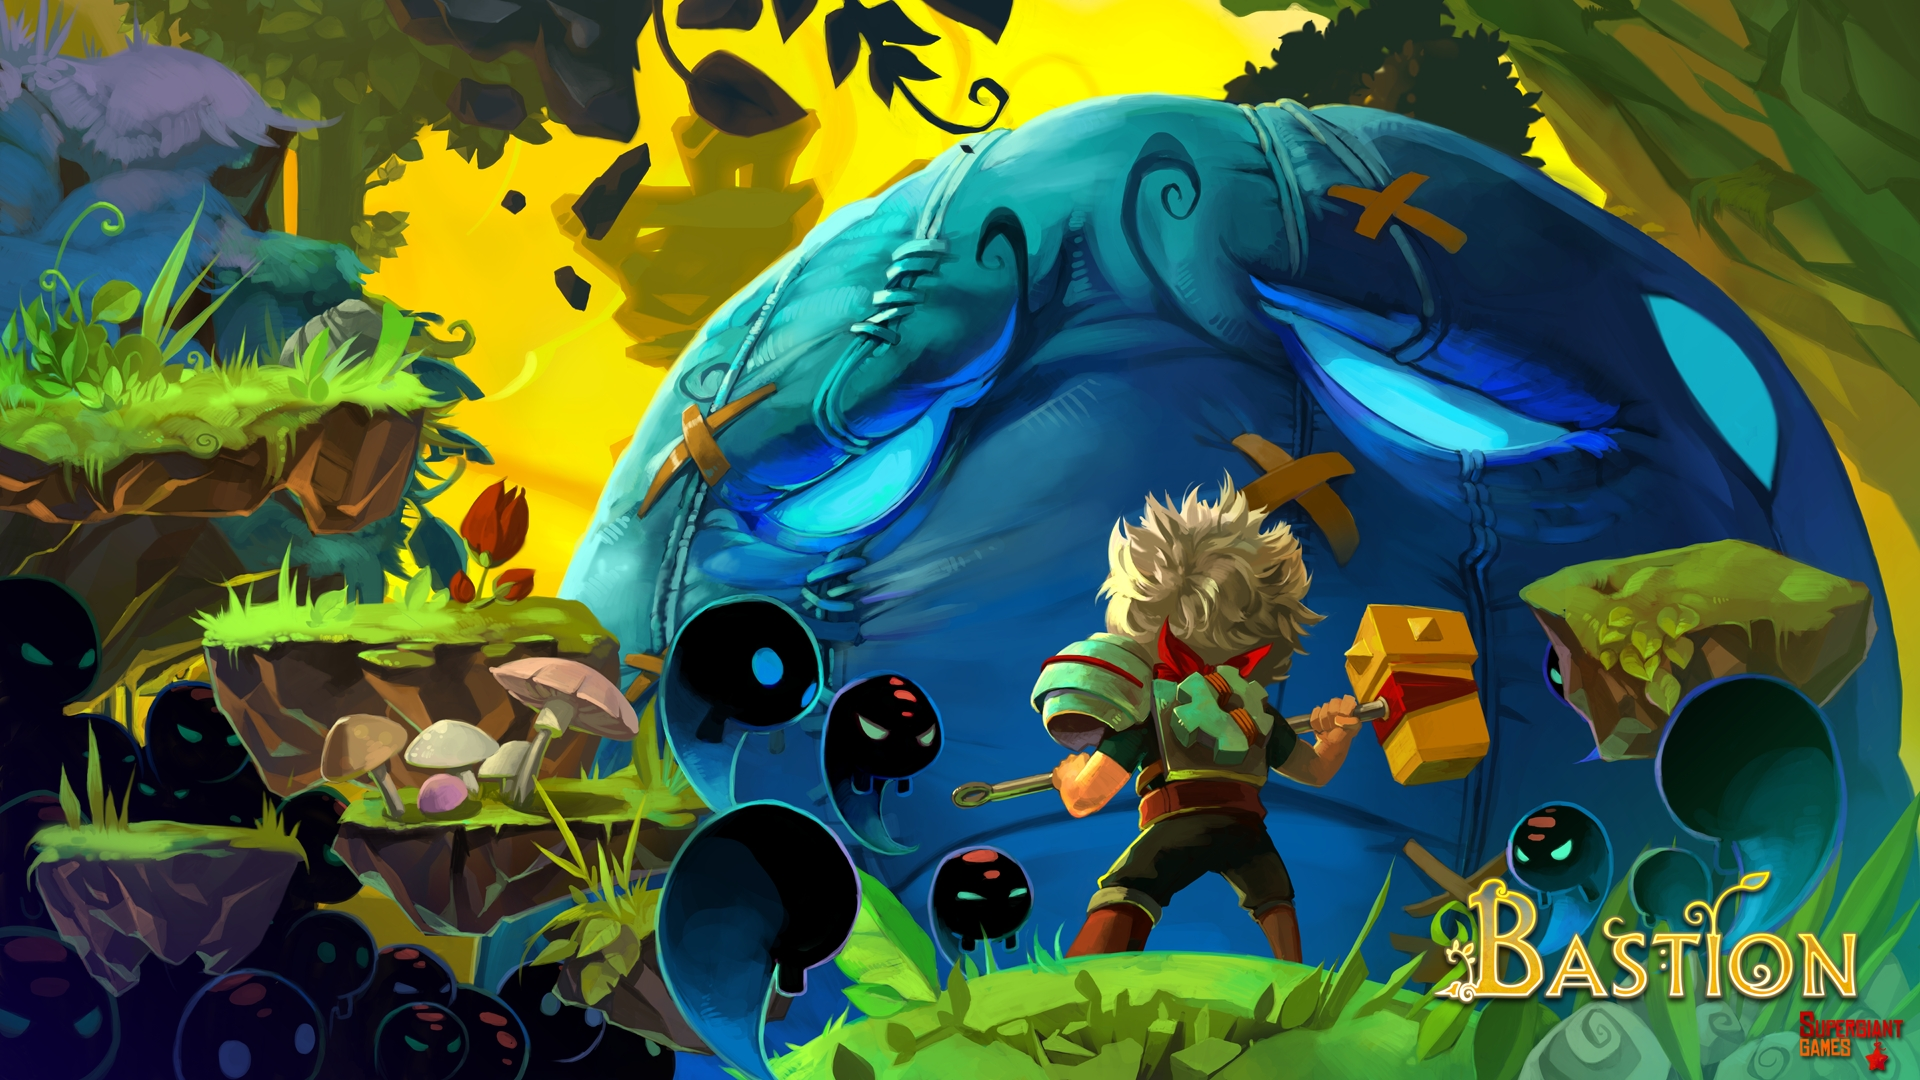 Bastion coming to Xbox One